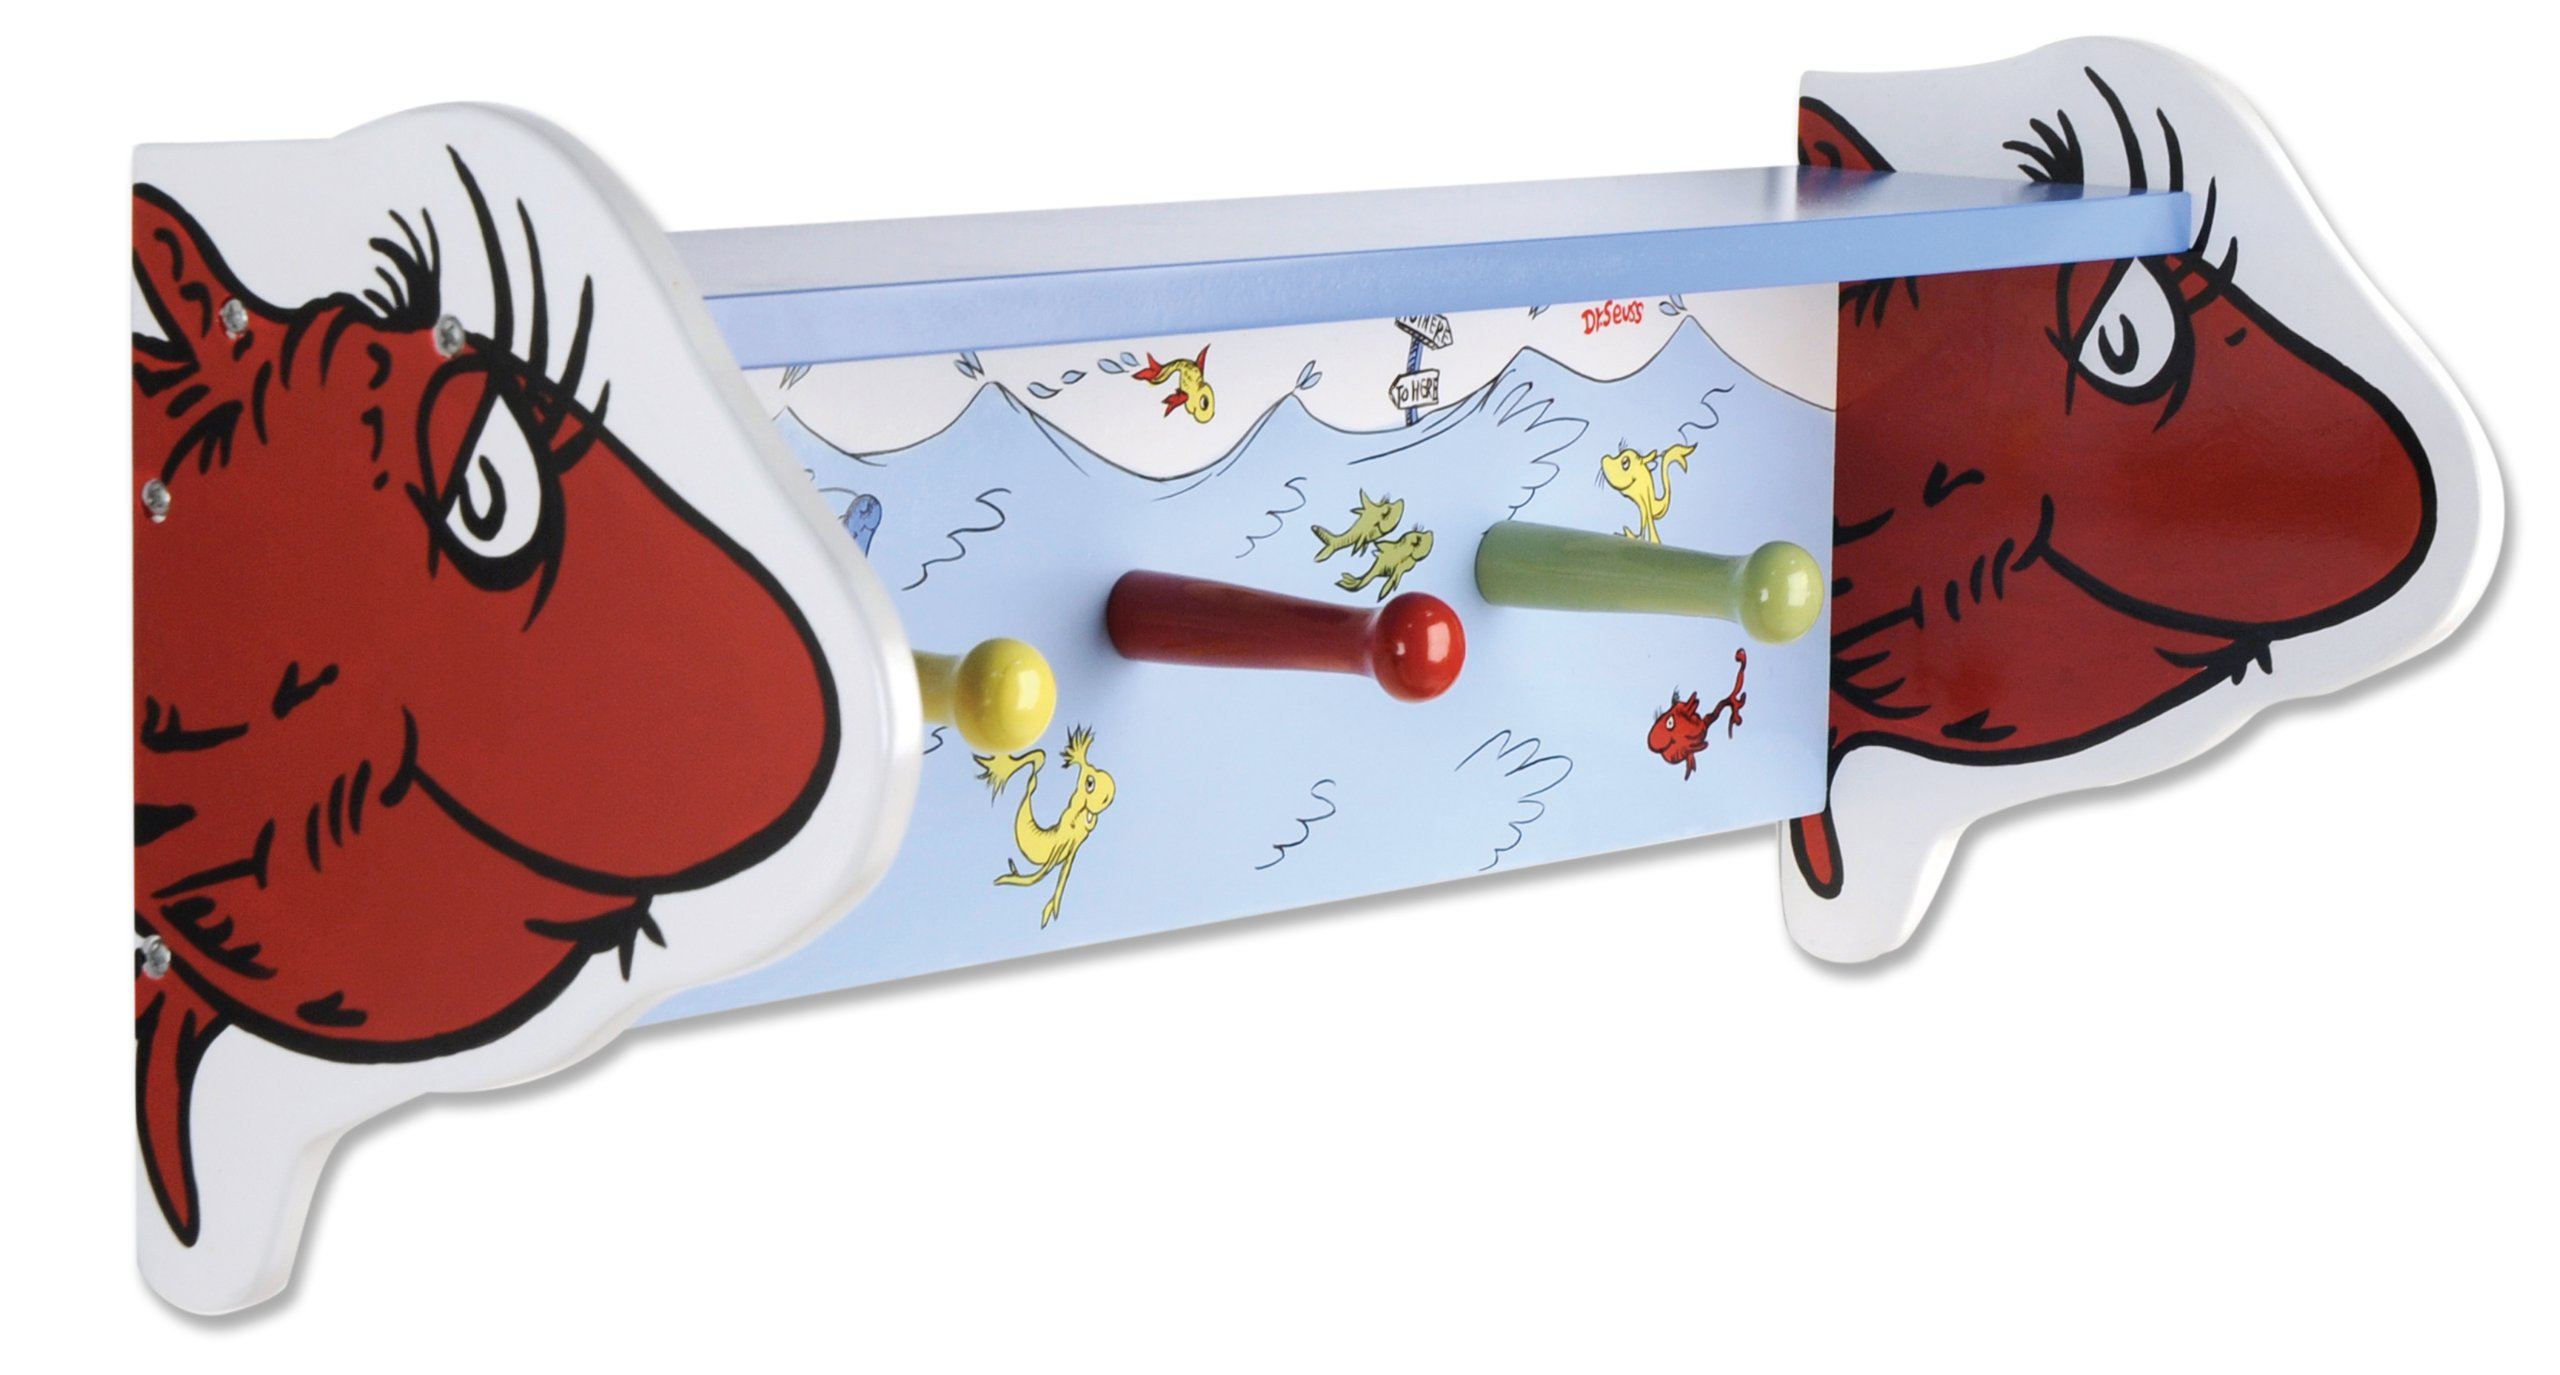 Amazon.com: Trend Lab Dr. Seuss Wall Clock, One Fish Two Fish: Baby